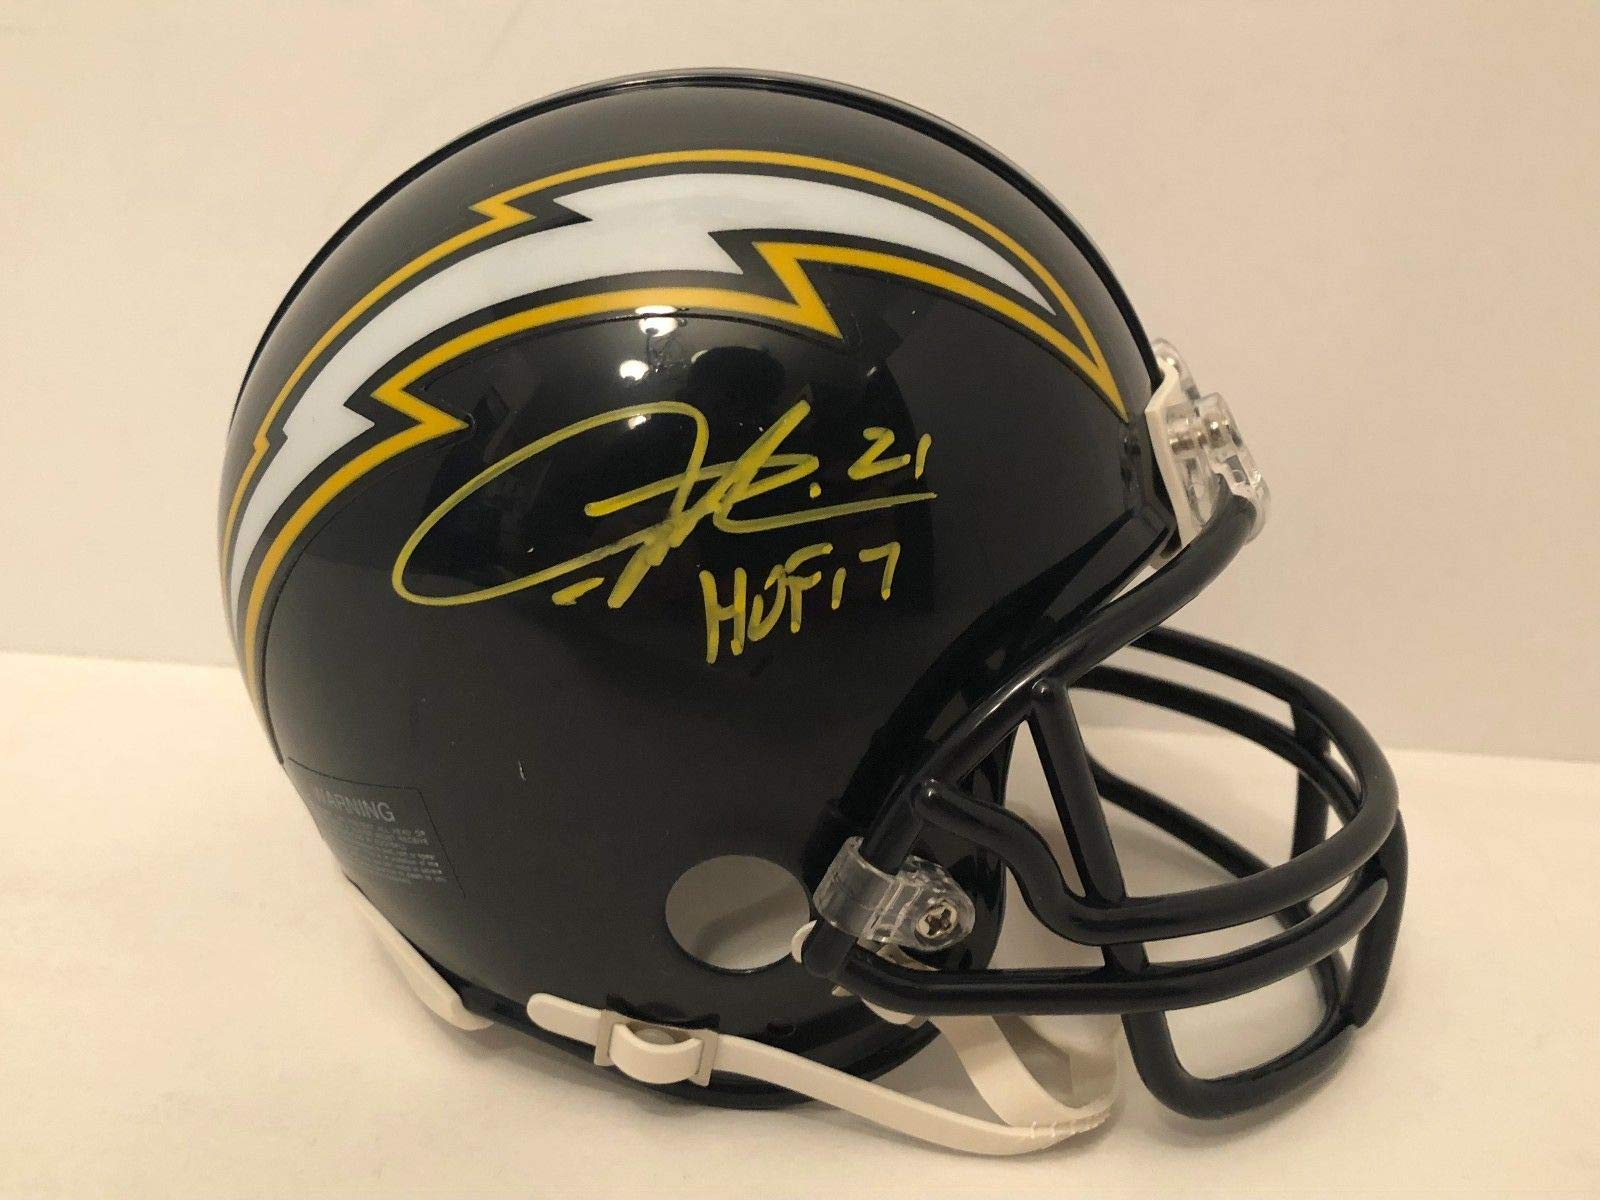 LaDainian Tomlinson San Diego Chargers Signed Autograph Mini Helmet HOF Inscribed GTSM Player Hologram JSA Witnessed Certified